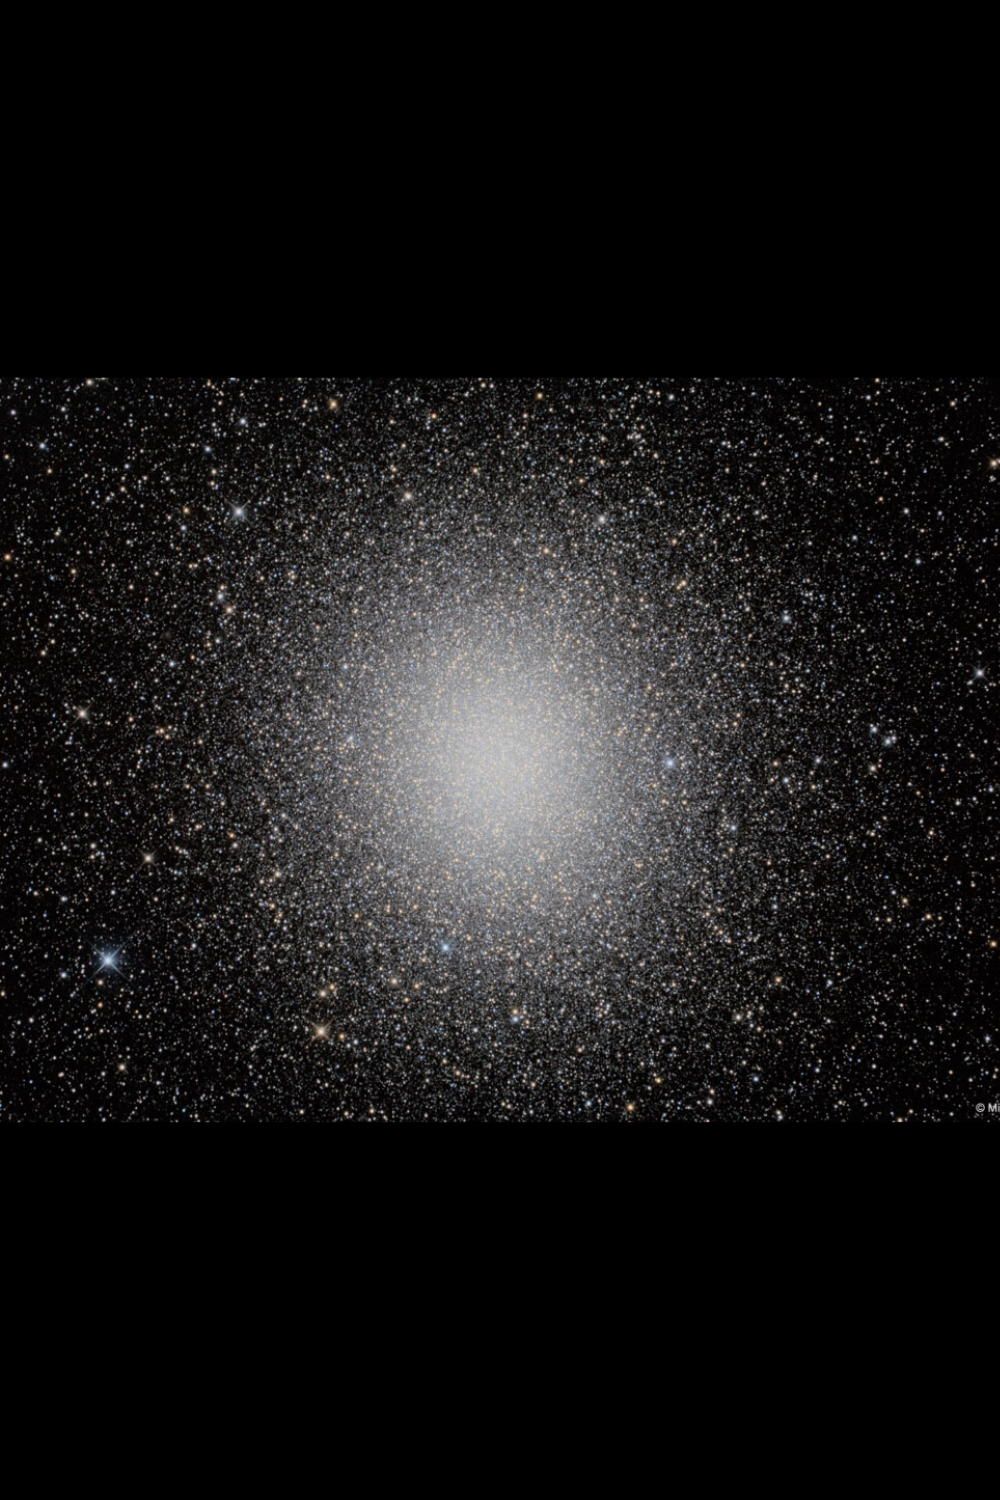 Star Cluster Omega Centauri In Hdr Star Cluster Astronomy Space Pictures